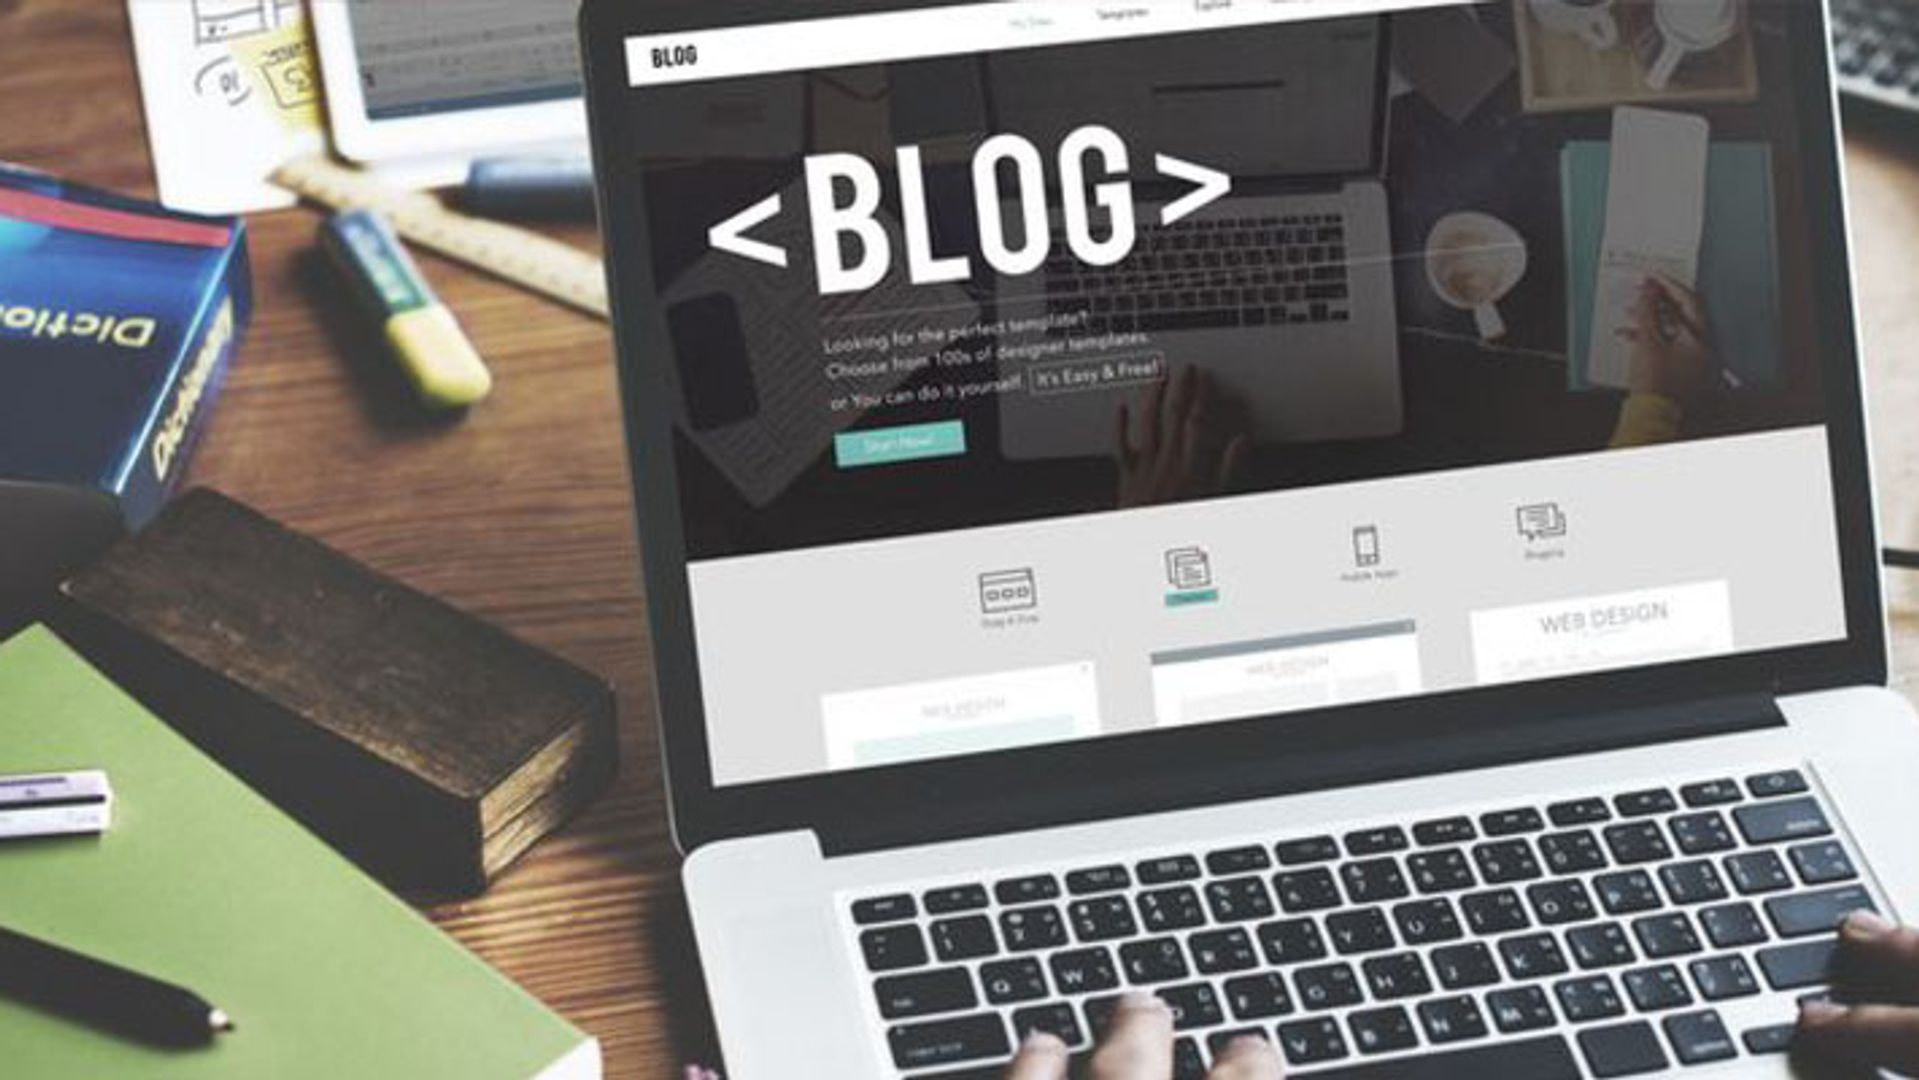 Social or Blog – Where Should I Tell My Story?